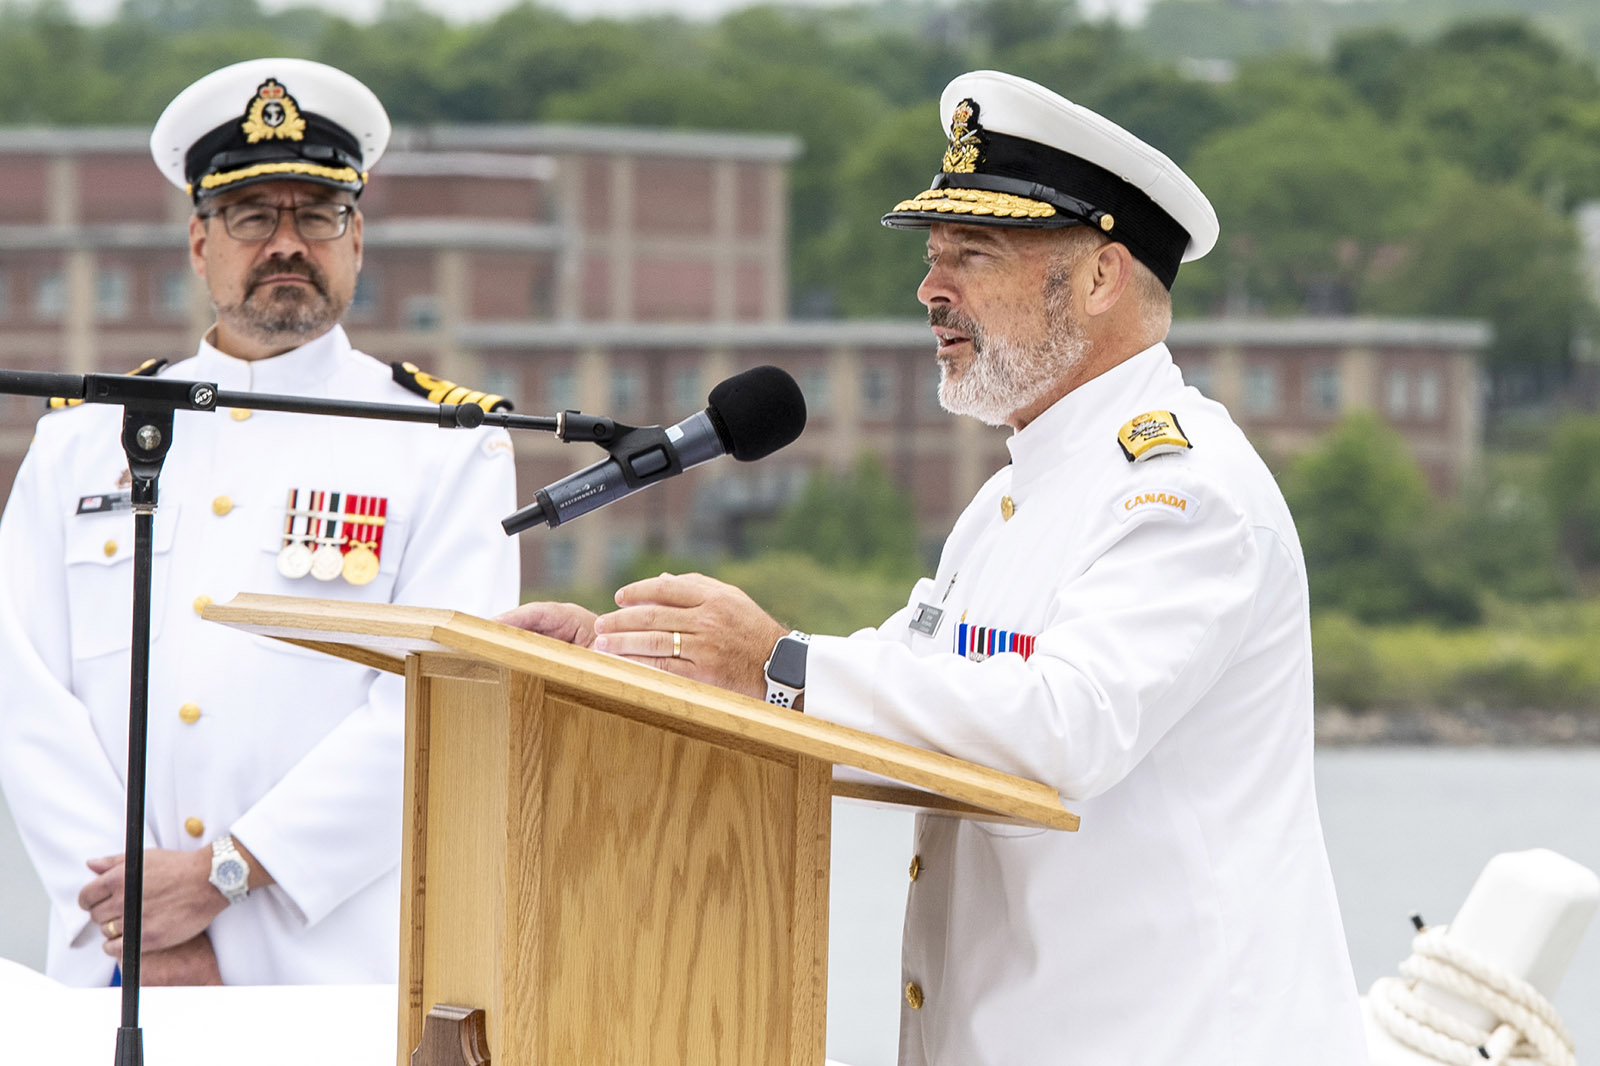 RAdm Baines gives his farewell address.